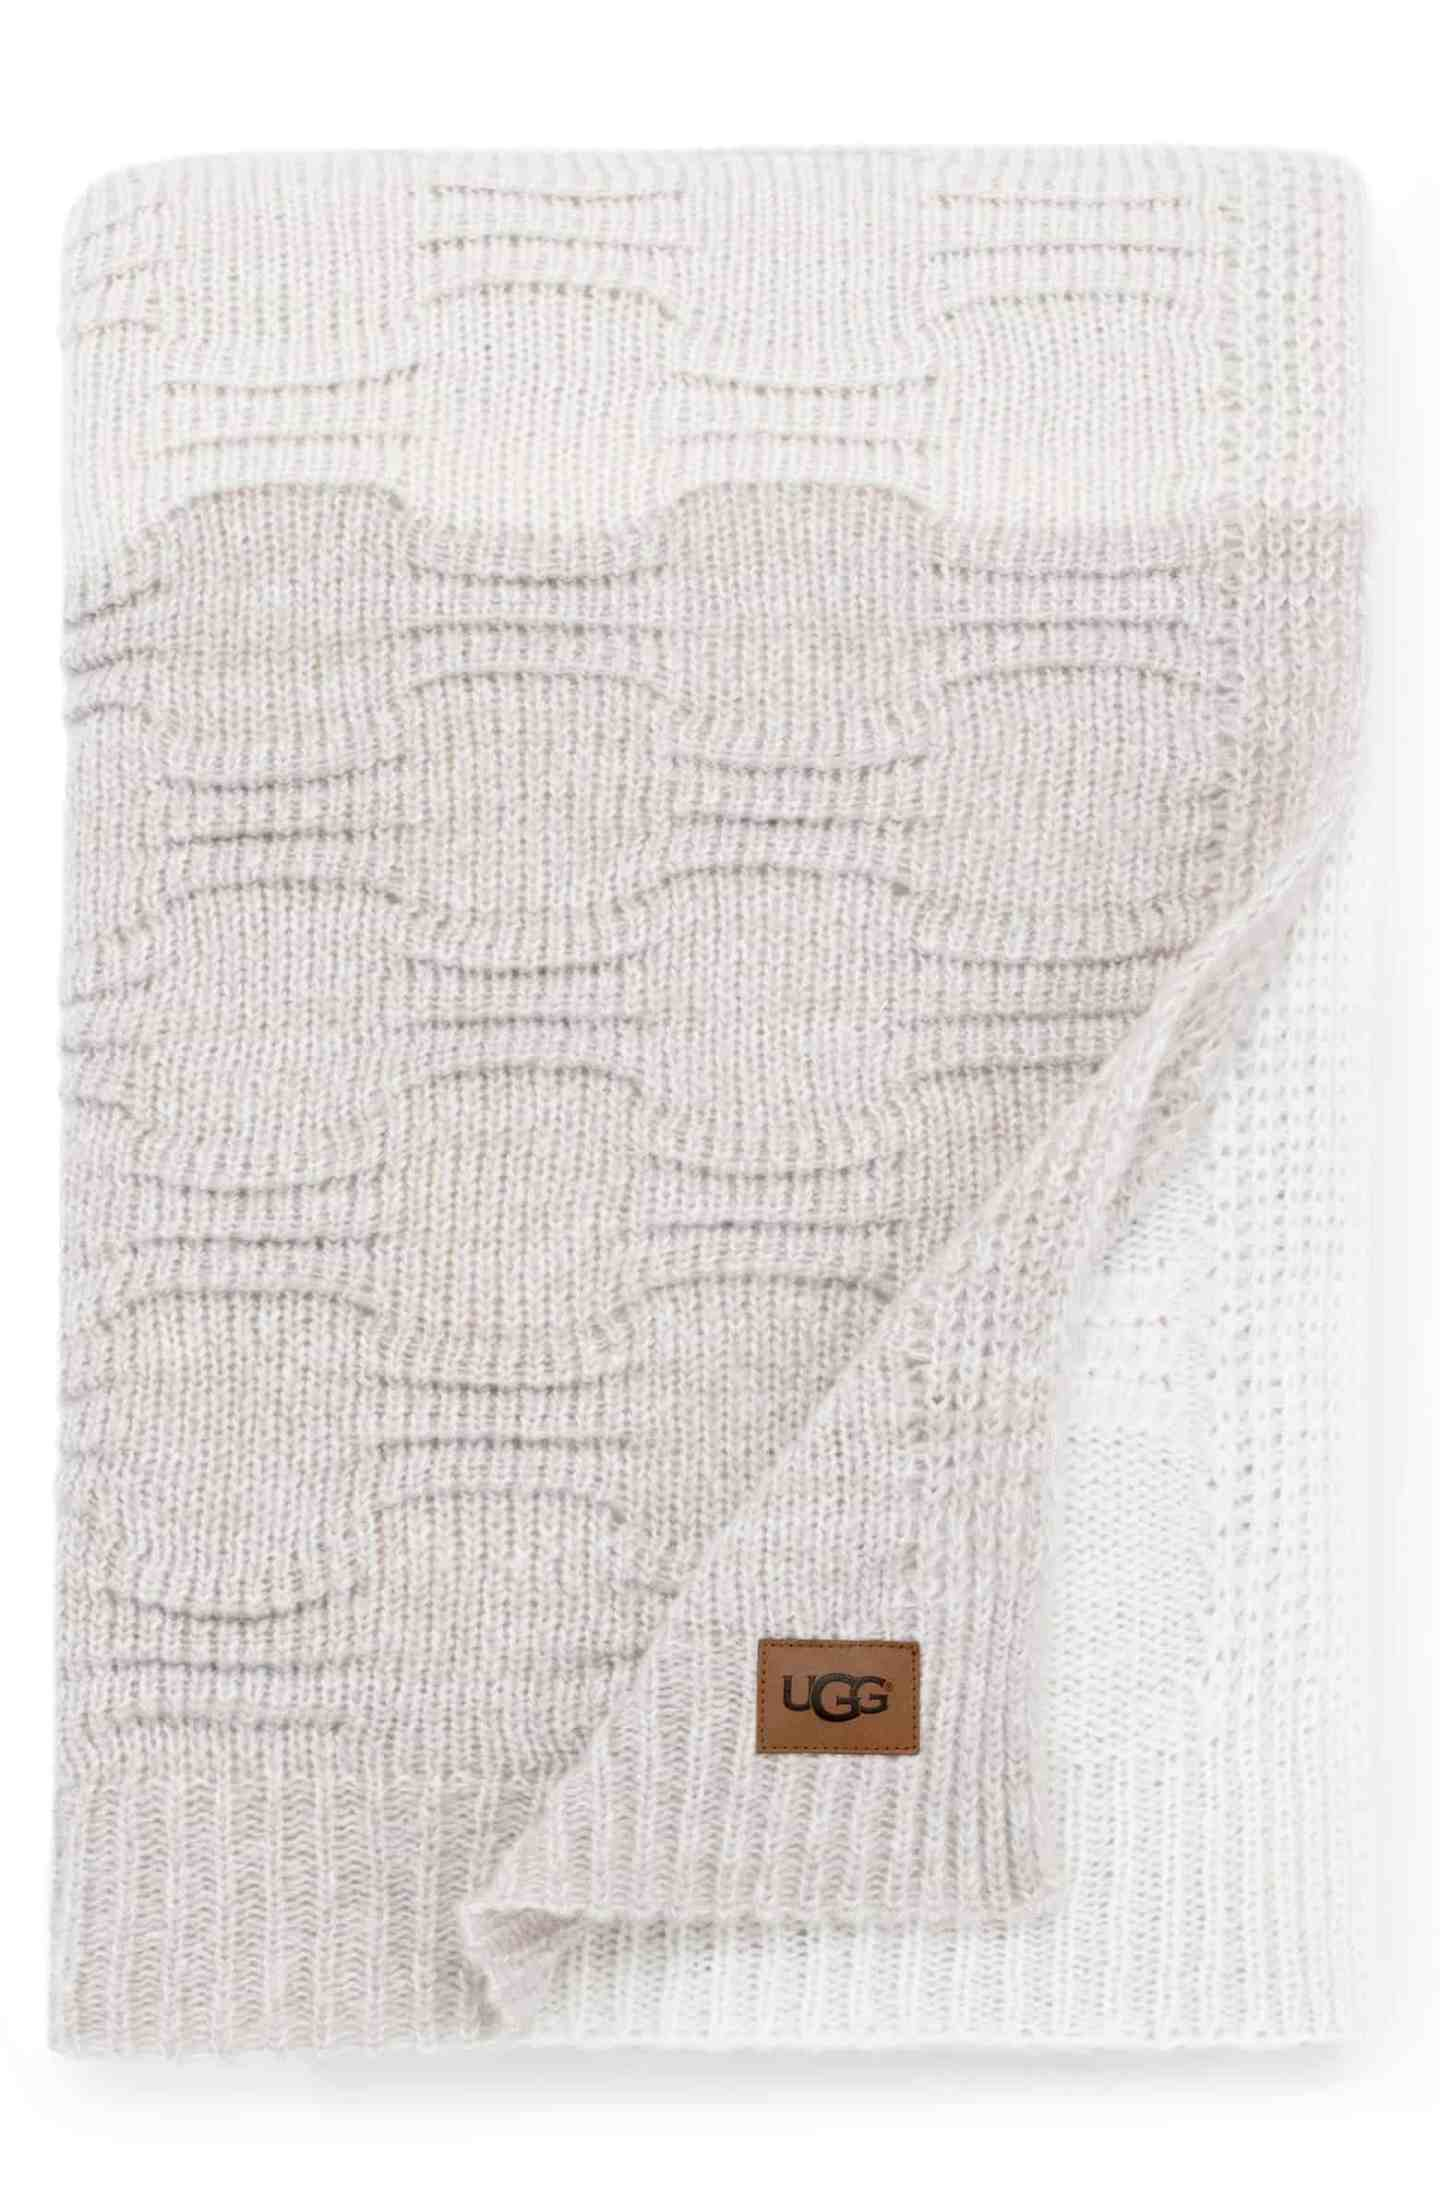 UGG Throw Blanket